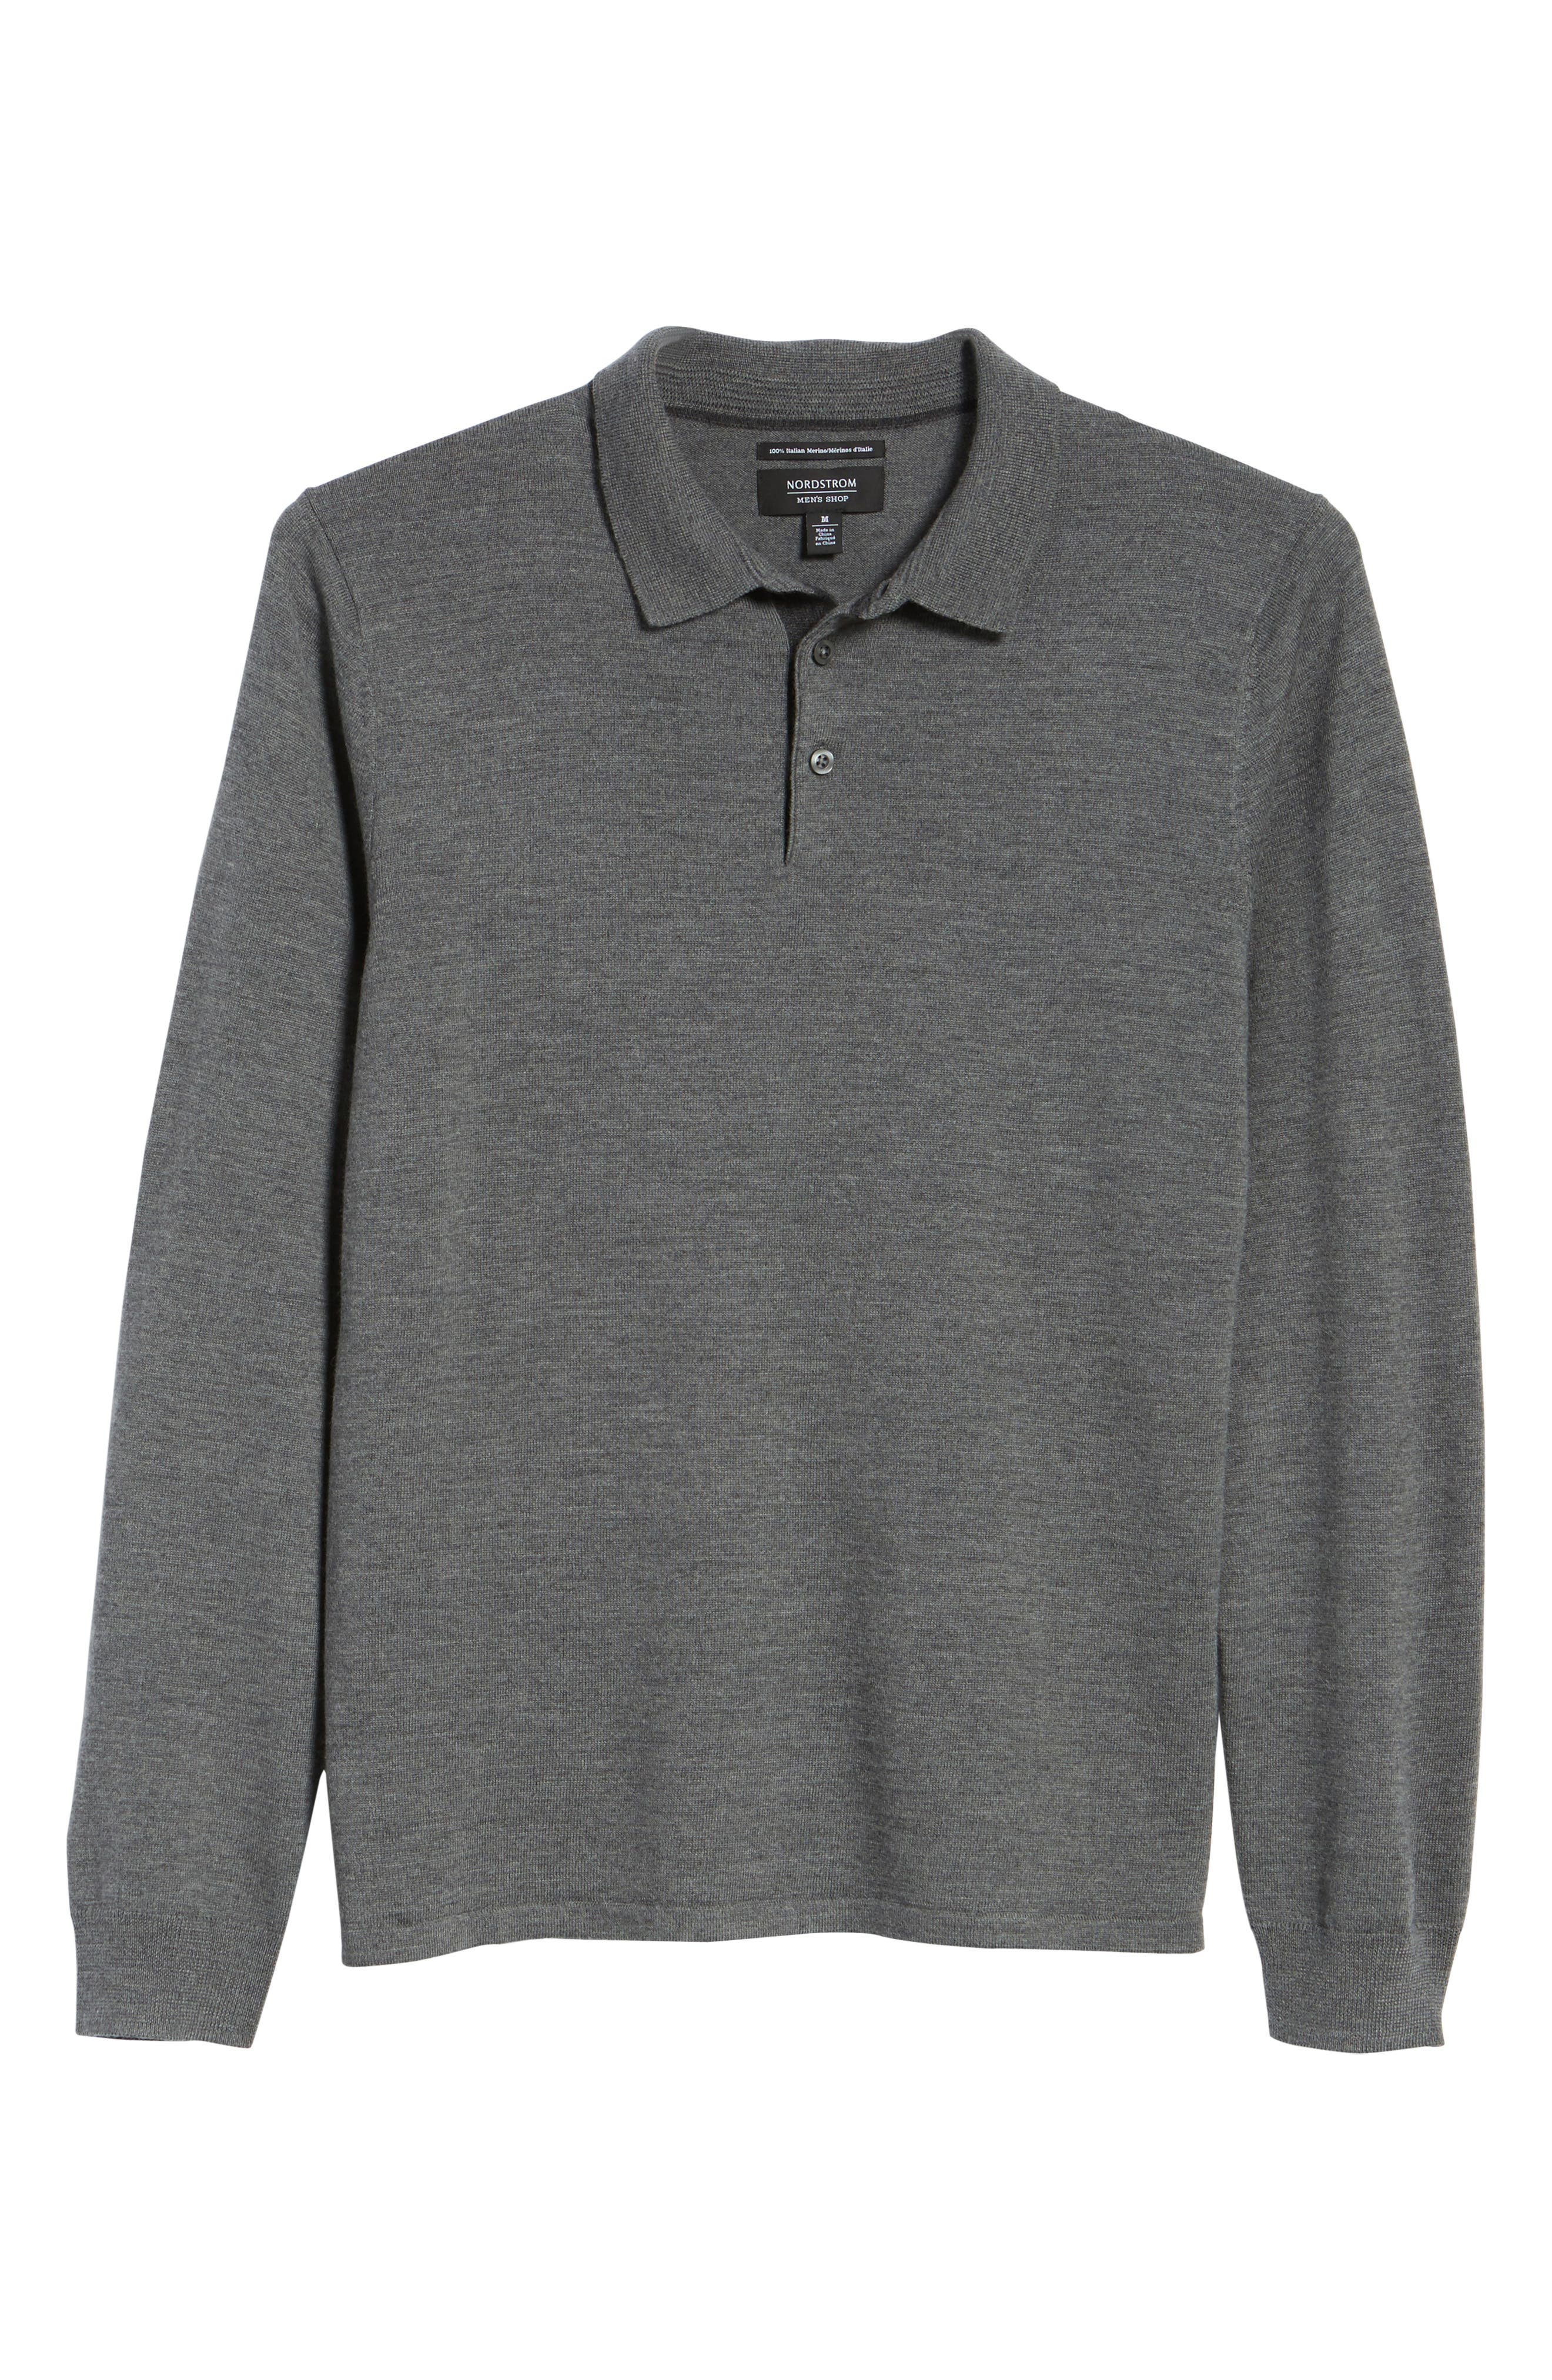 Merino Wool Polo Sweater,                             Alternate thumbnail 6, color,                             Grey Heather